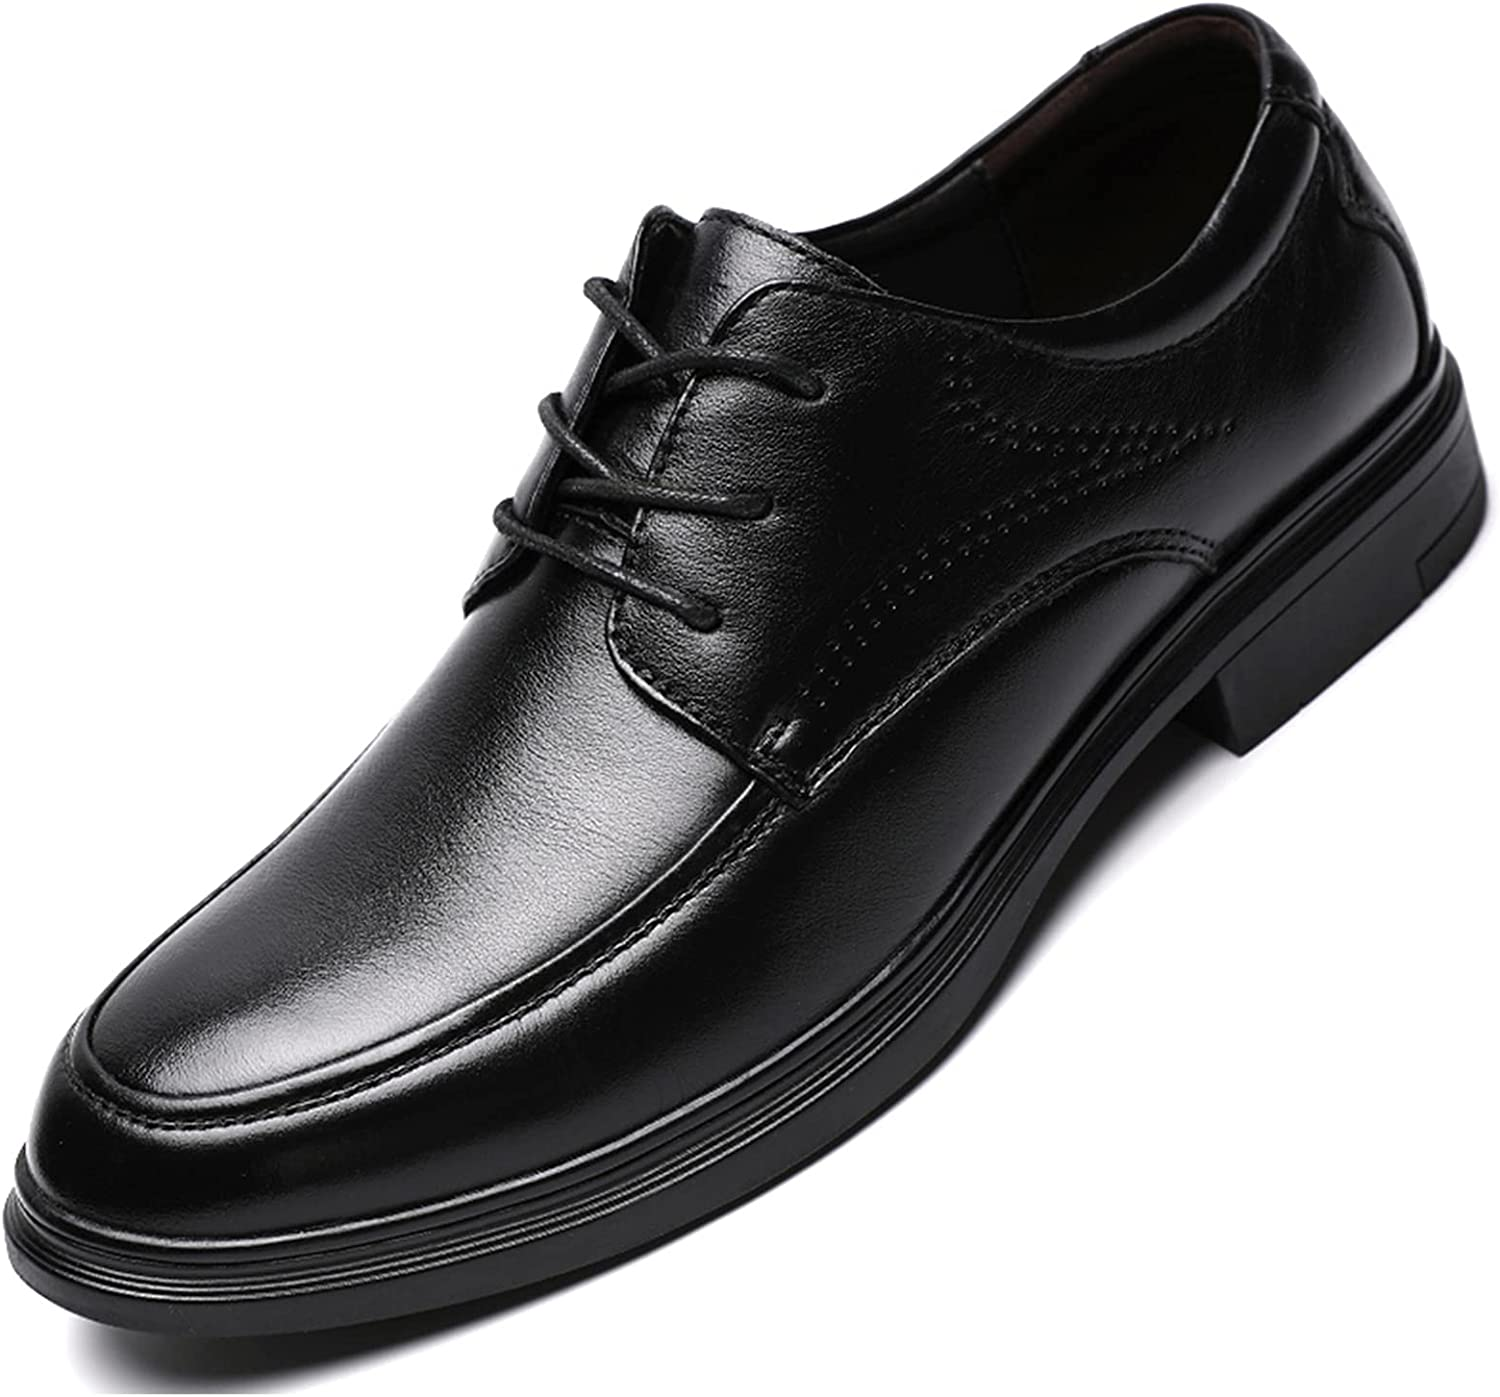 Men's Oxford Leather Shoes Lace-up Shoes Breathable Commuting Business Casual Dress Shoes